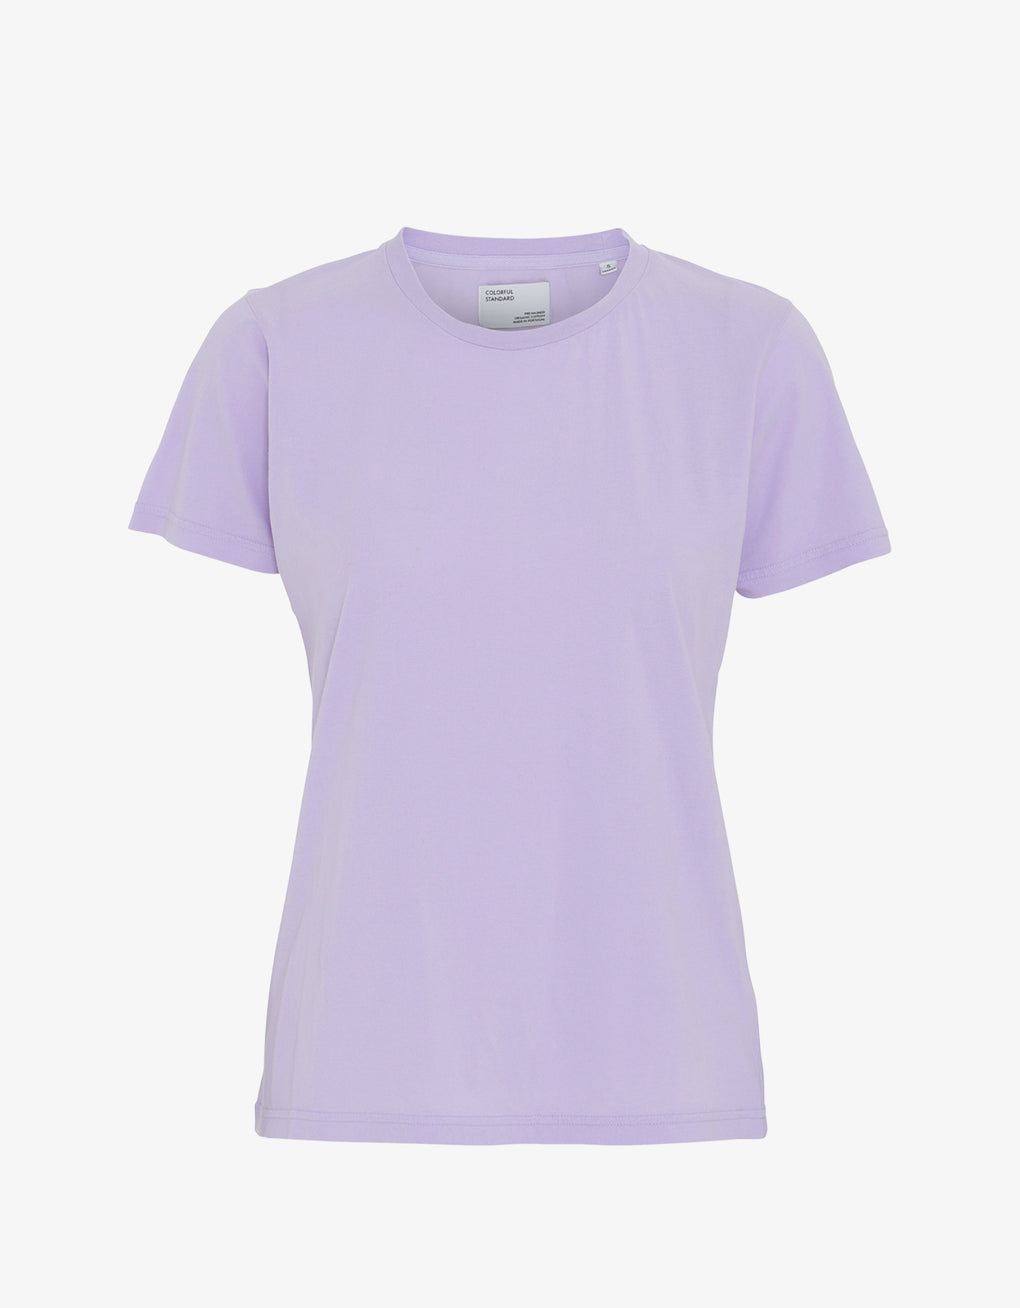 Colorful Standard Women Light Organic Tee Women T-shirt Soft Lavender